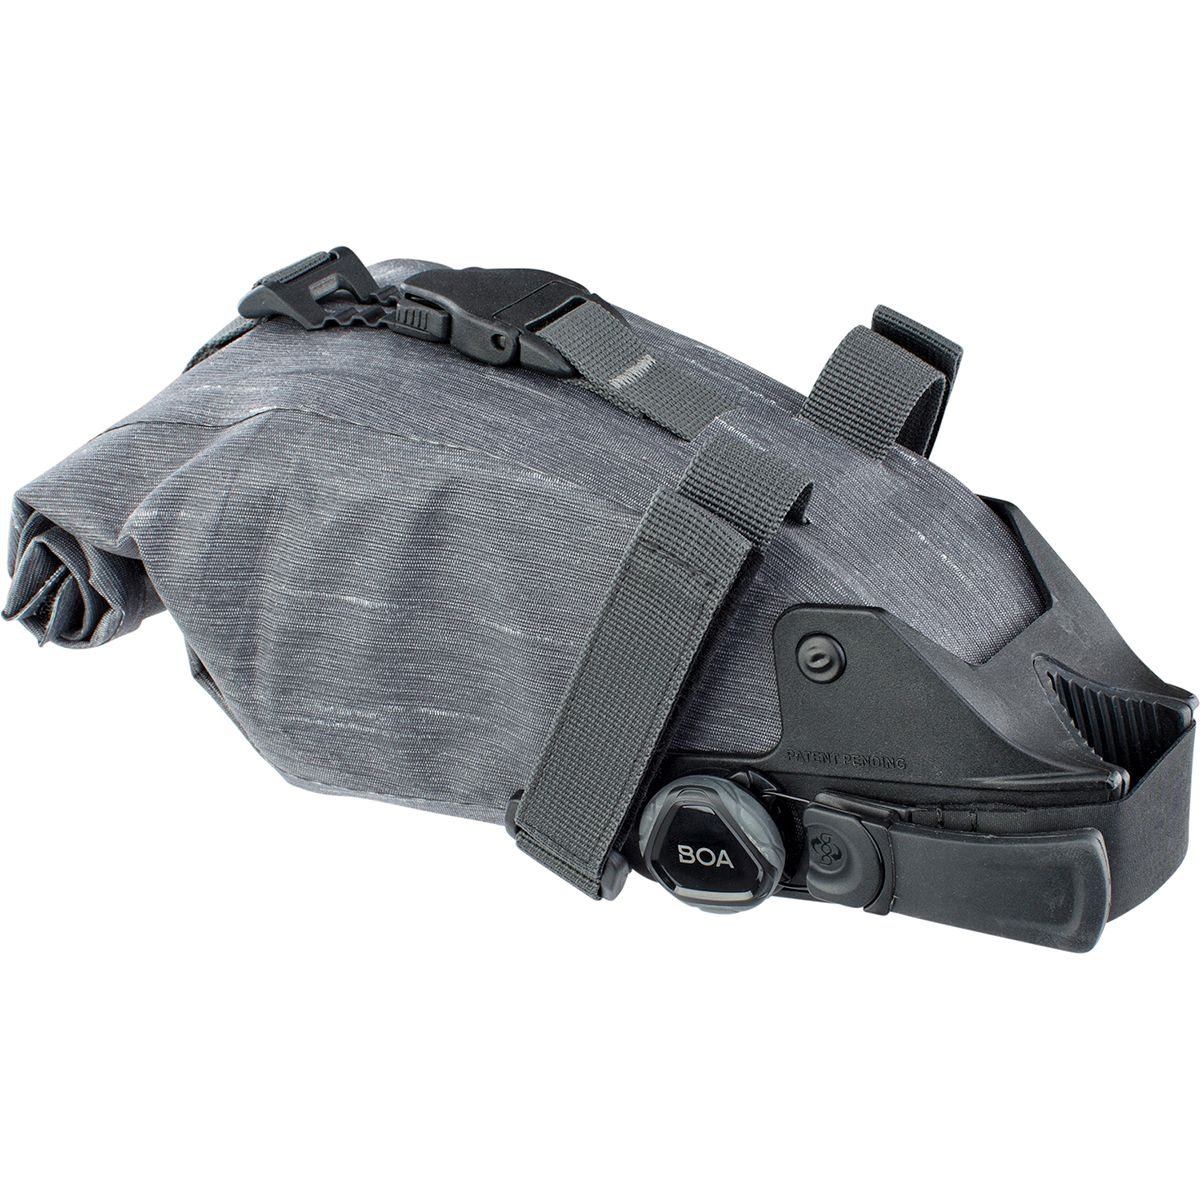 evoc SEAT PACK BOA M saddle bag | Saddle bags